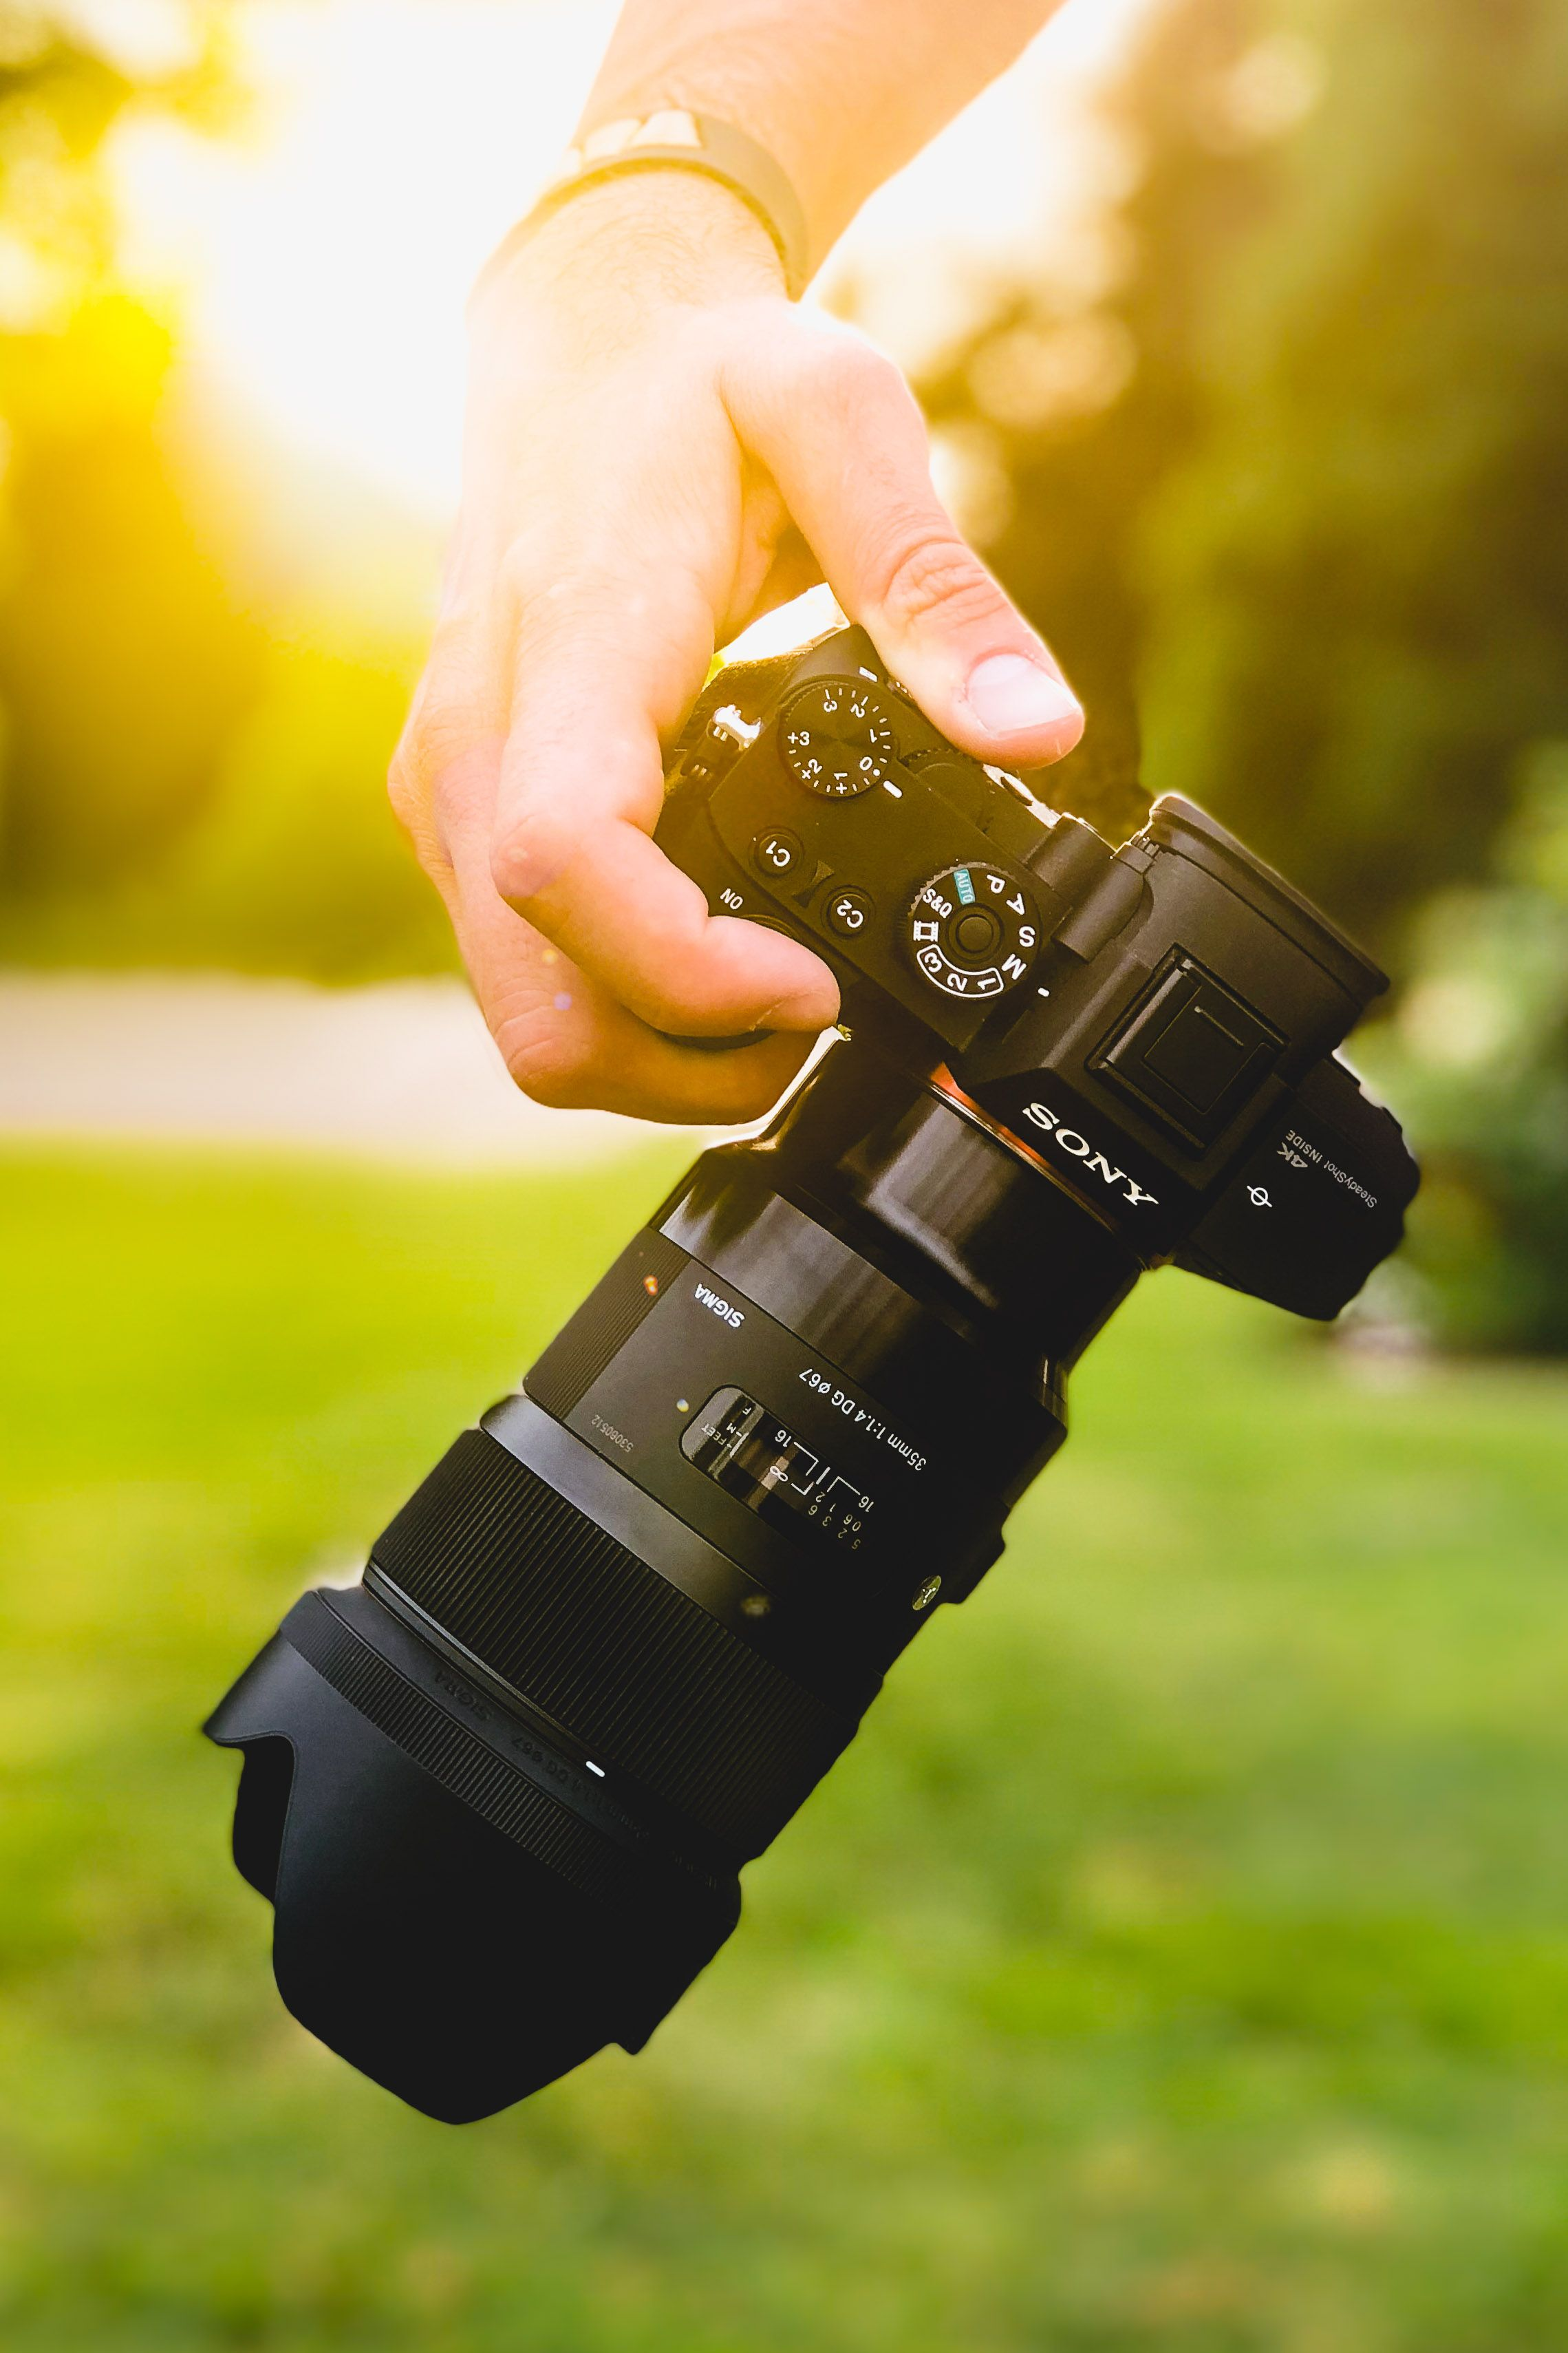 Sony A7riii Sony A7m3 Sigma 35mm F1 4 Photography Bokeh Love Capturing Lens Camera Wallpaper Best Camera For Photography Canon Camera Photography